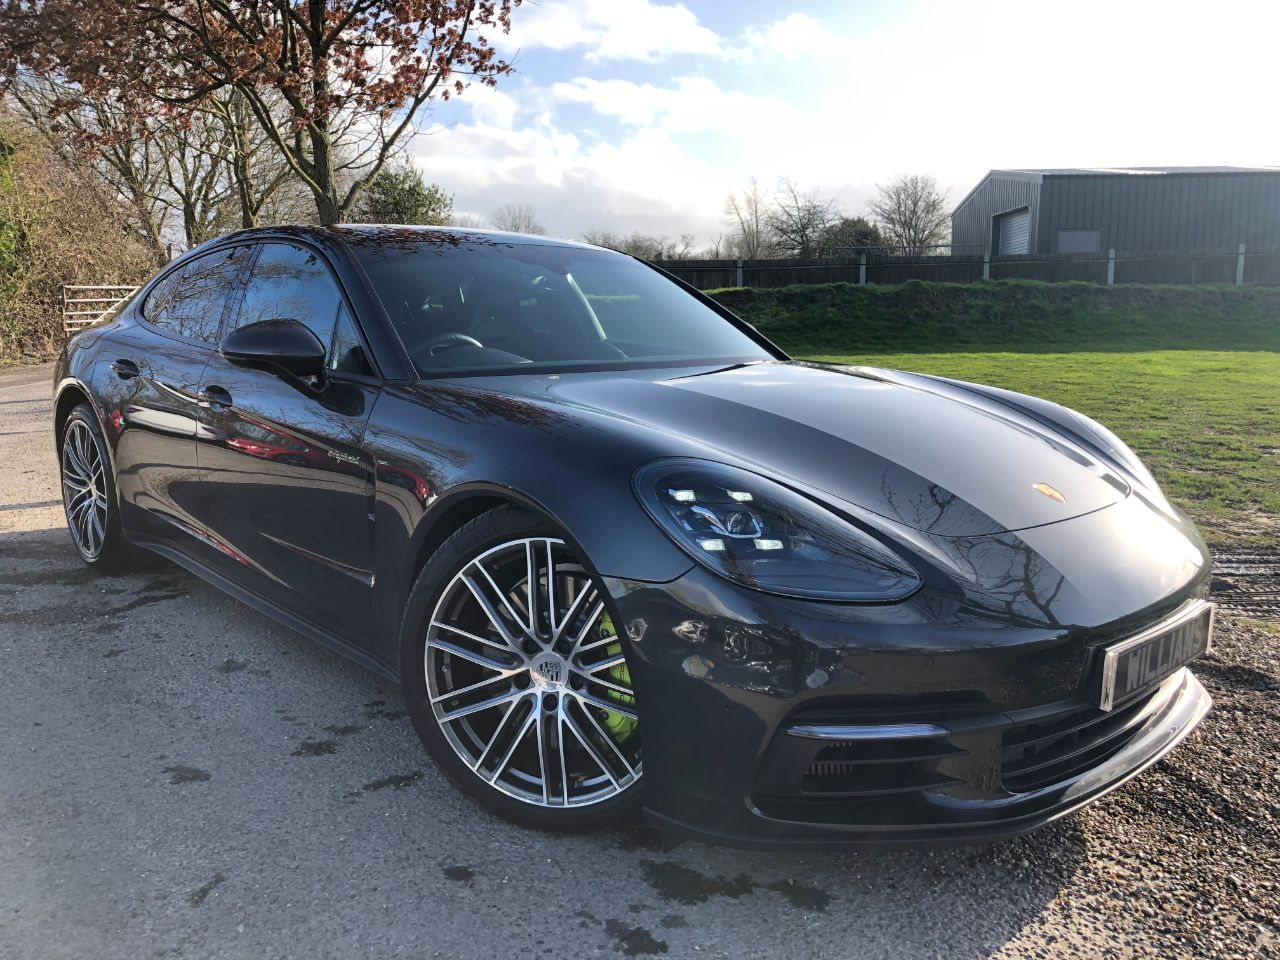 Porsche Panamera 2.9 V6 4 E-hybrid 5dr Pdk (21in 911 Turbos! Pan Roof! +++)